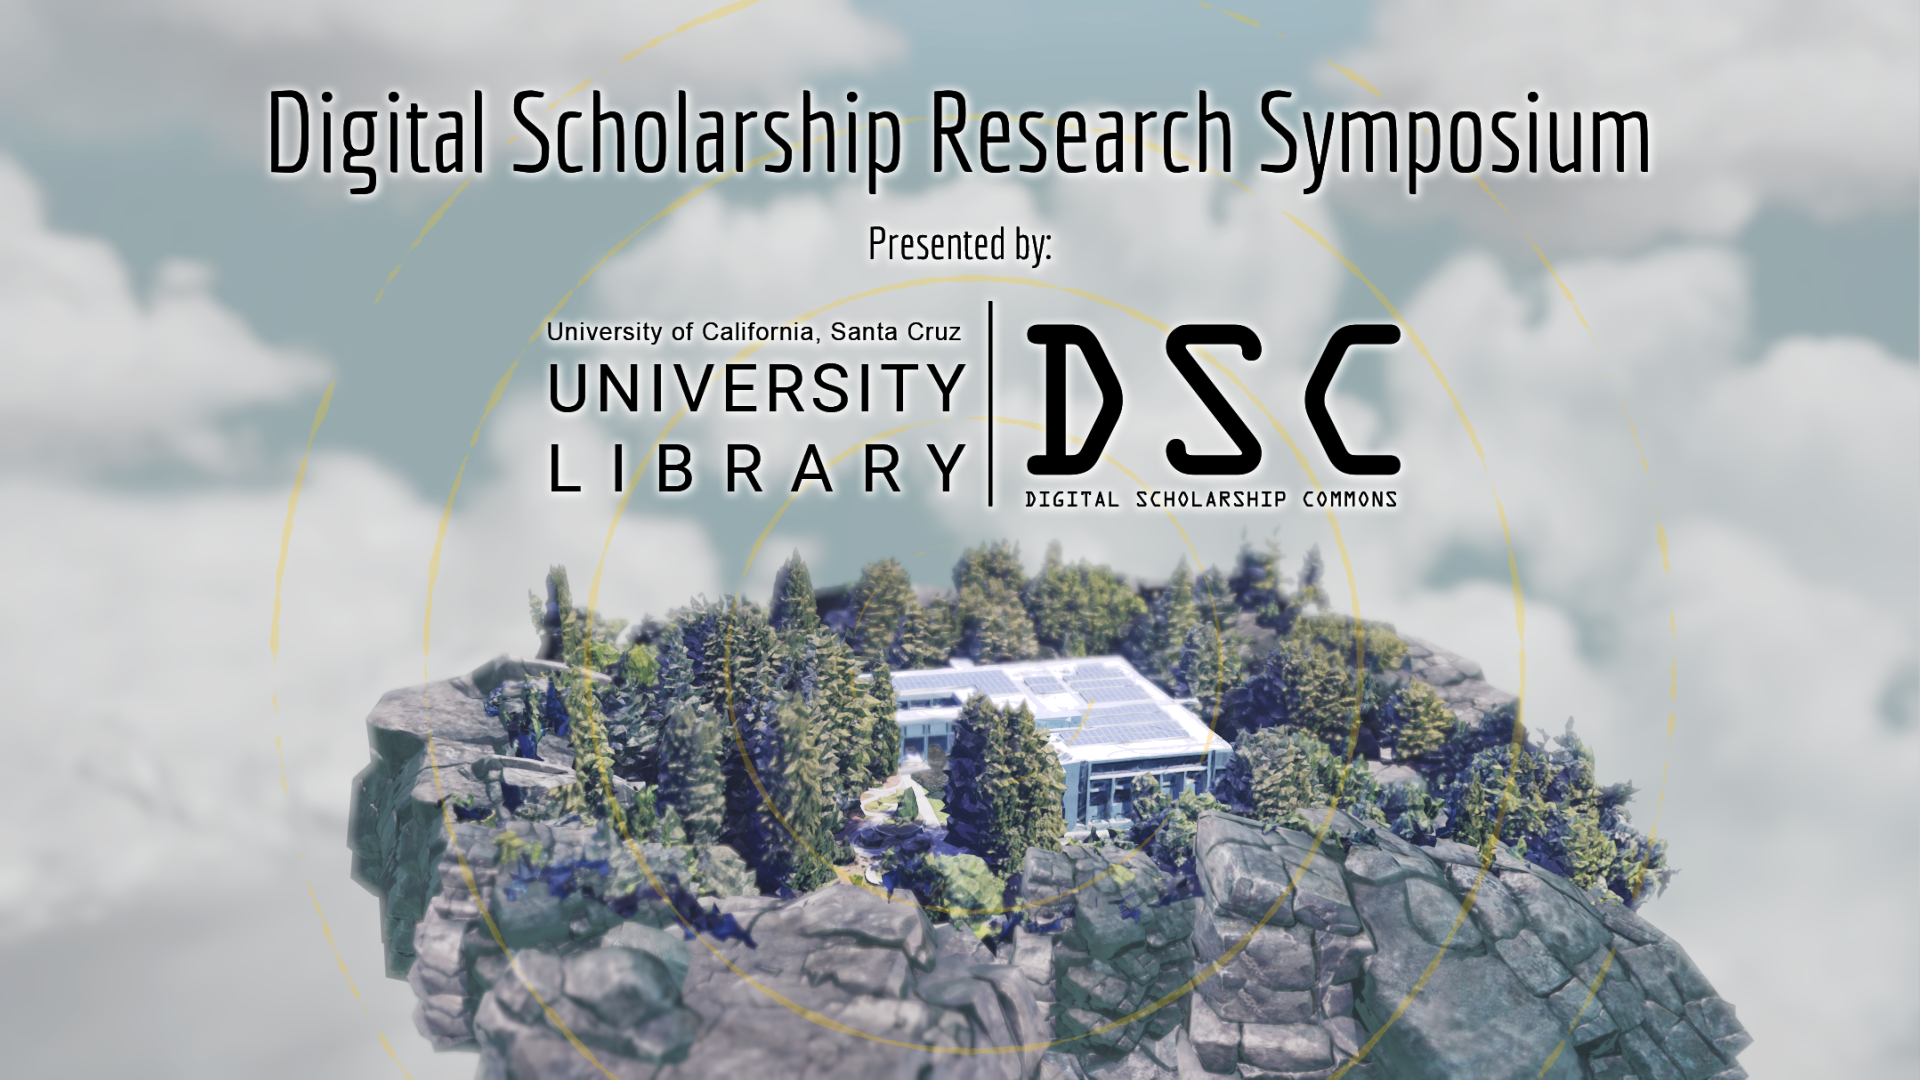 Digital Scholarship Research Symposium